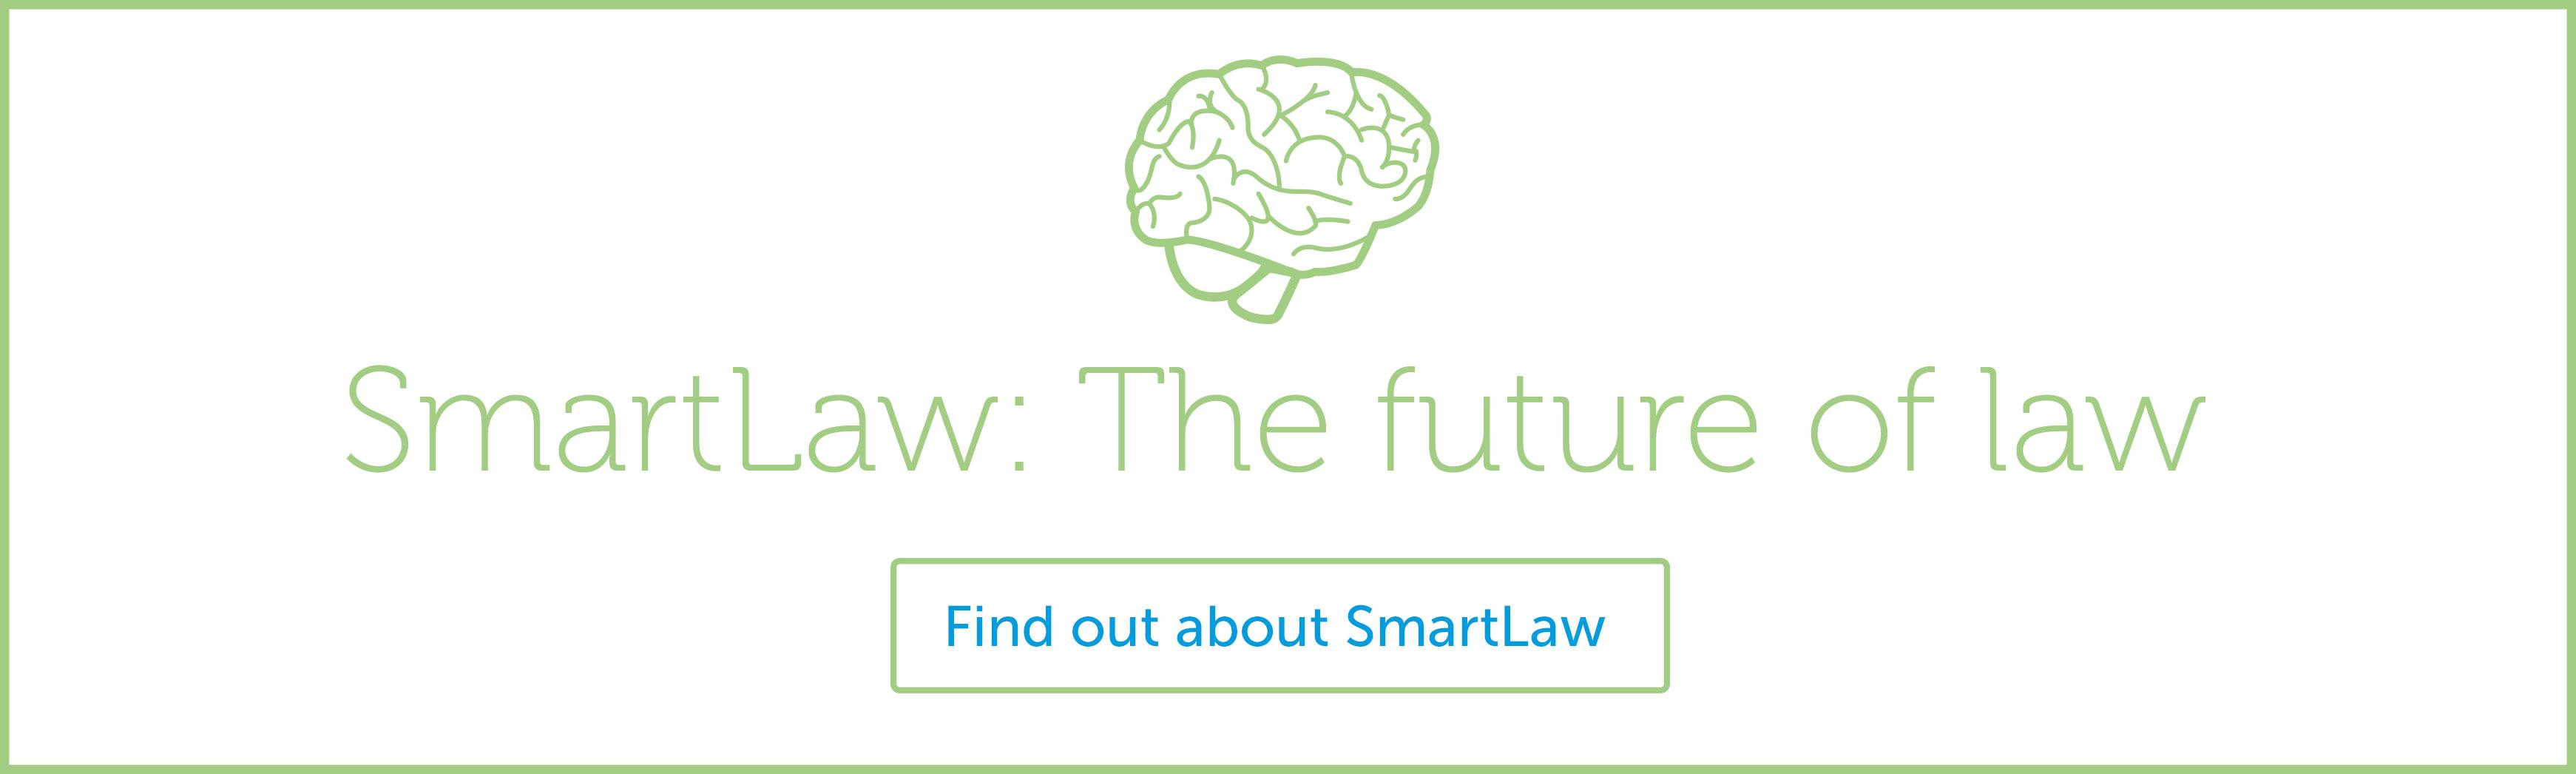 SmartLaw: The future of law